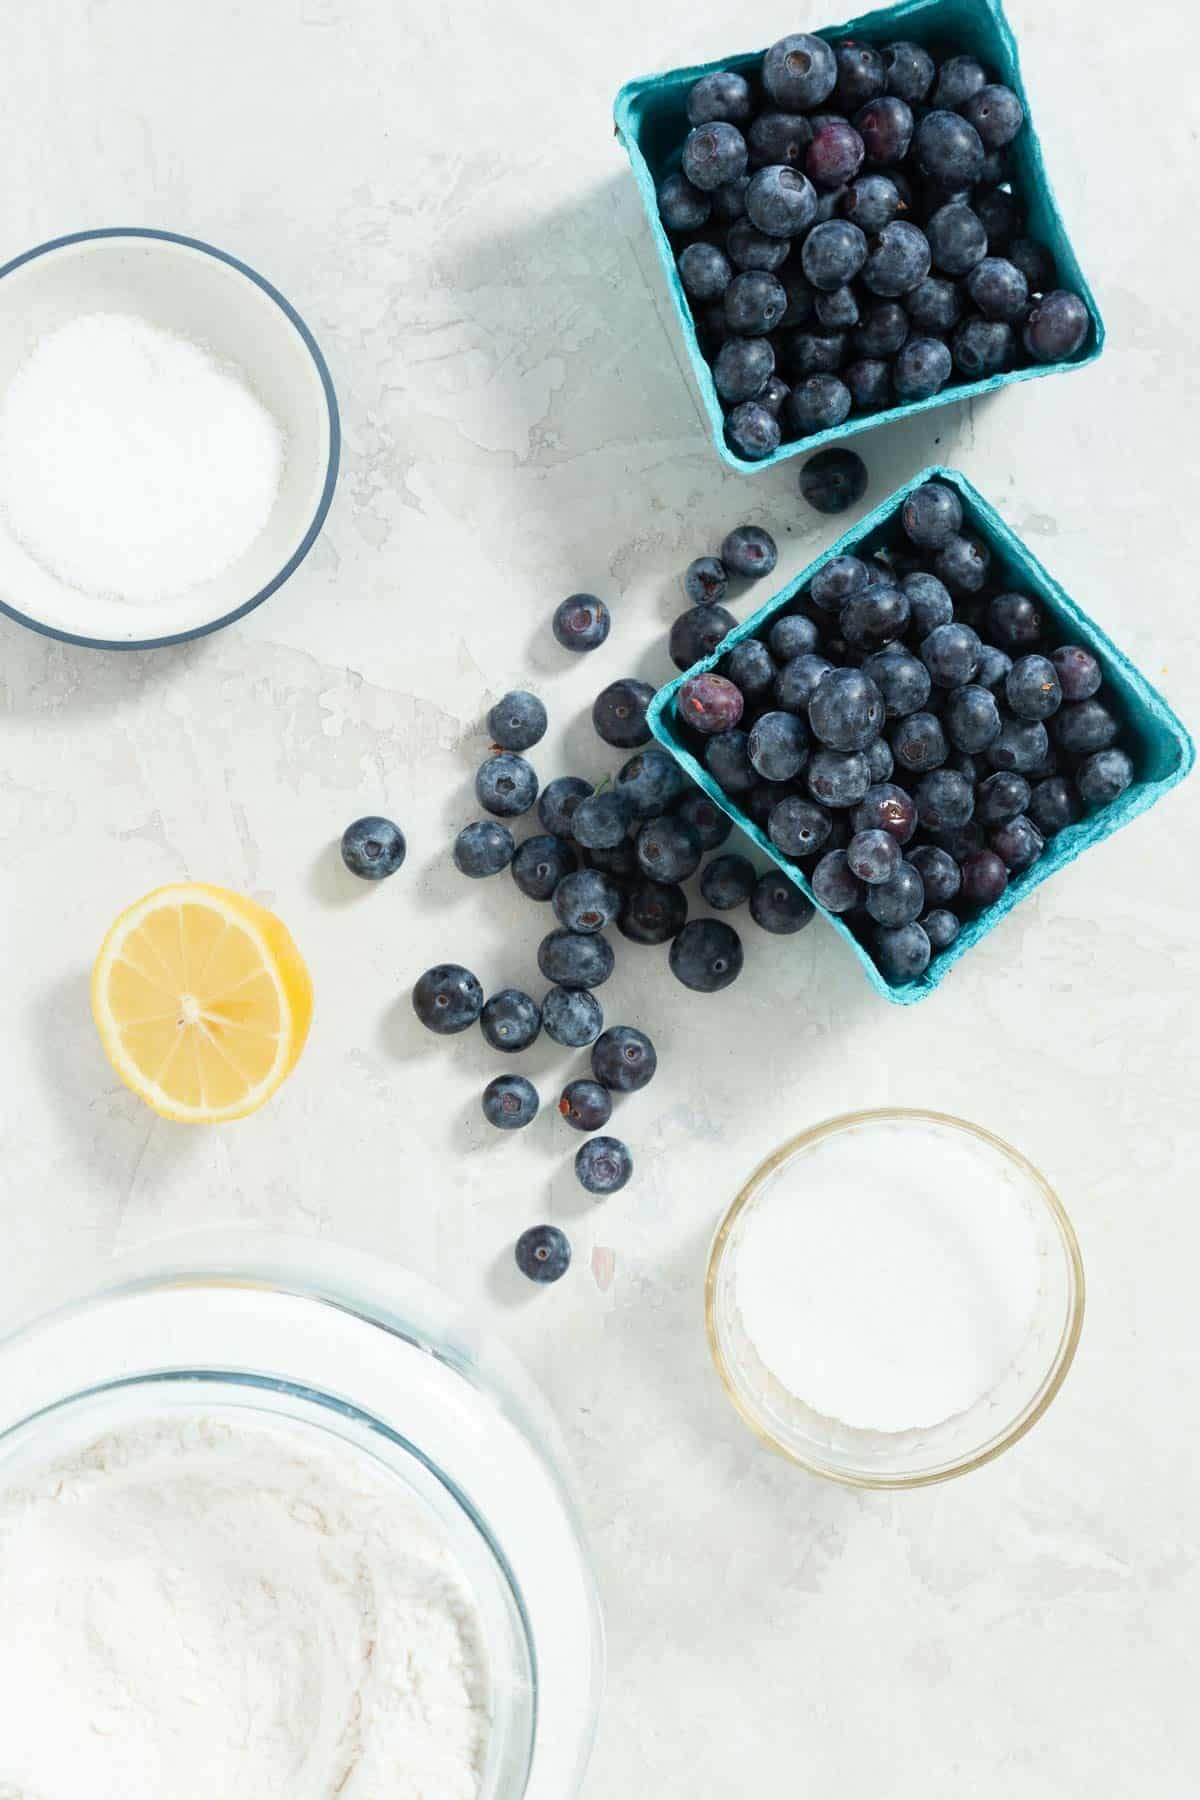 Small cartons of blueberries with bowls of flour, sugar, salt, and a lemon on the side.